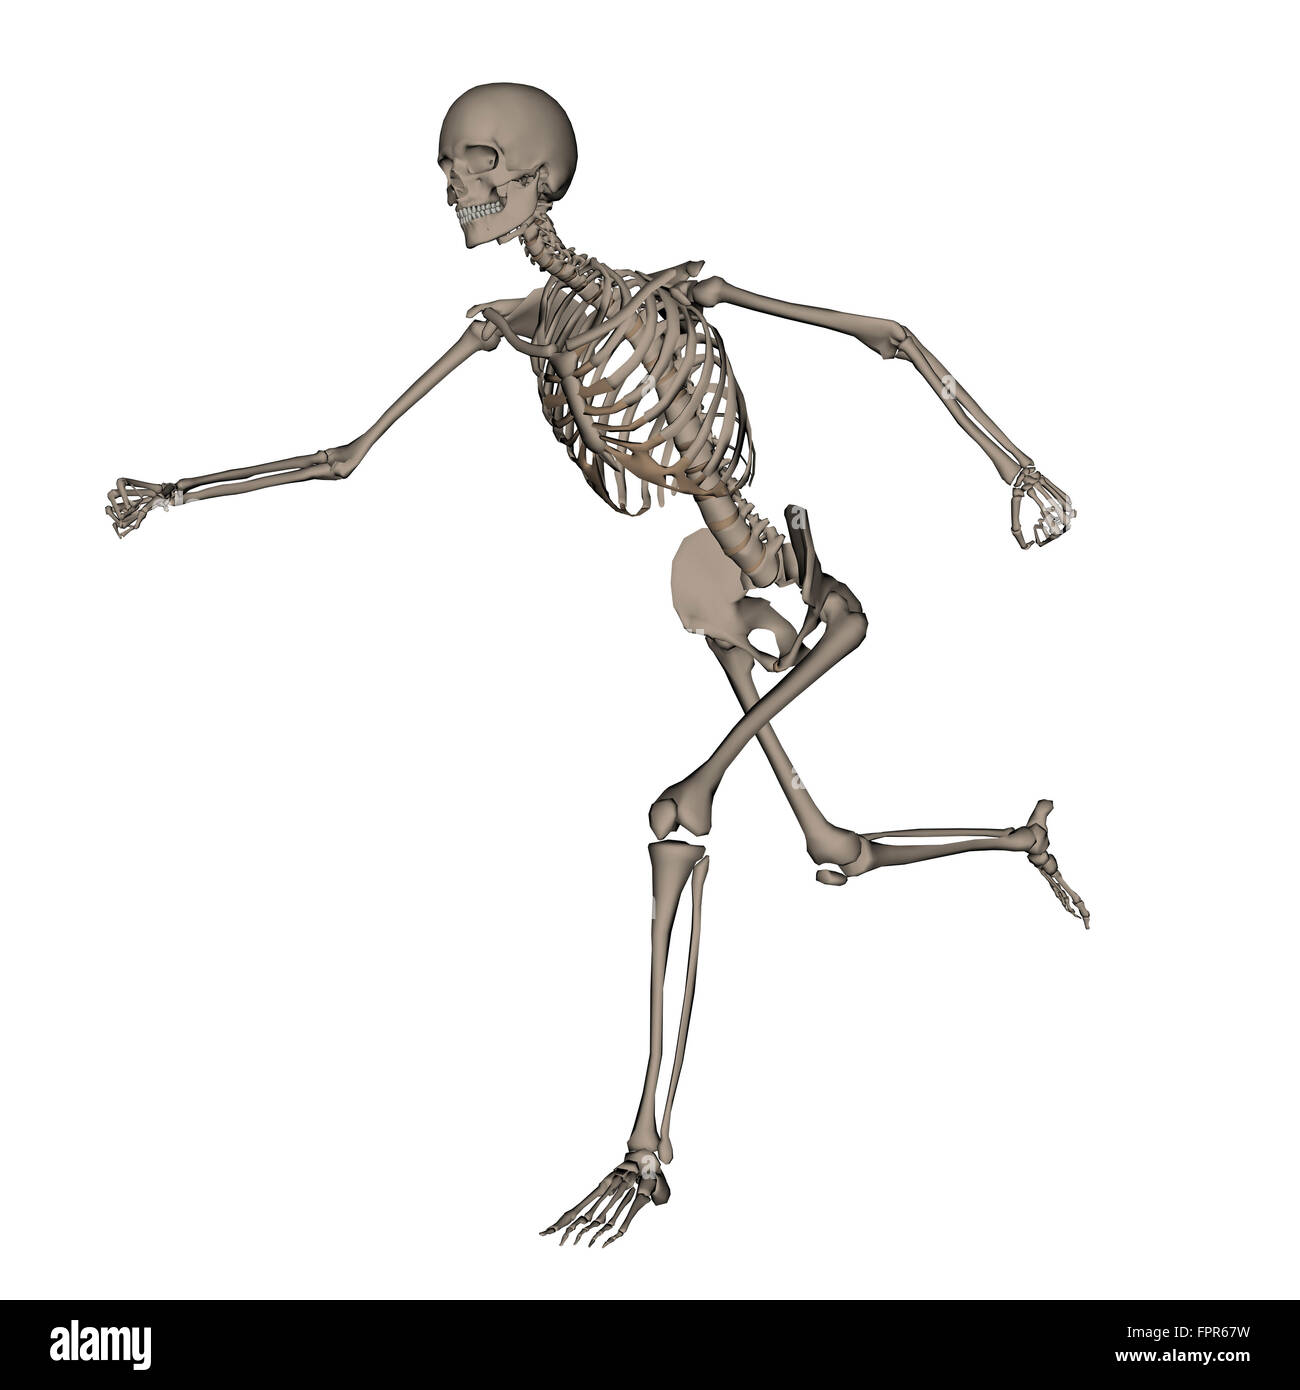 Front view of human skeleton running, isolated on white background. Stock Photo